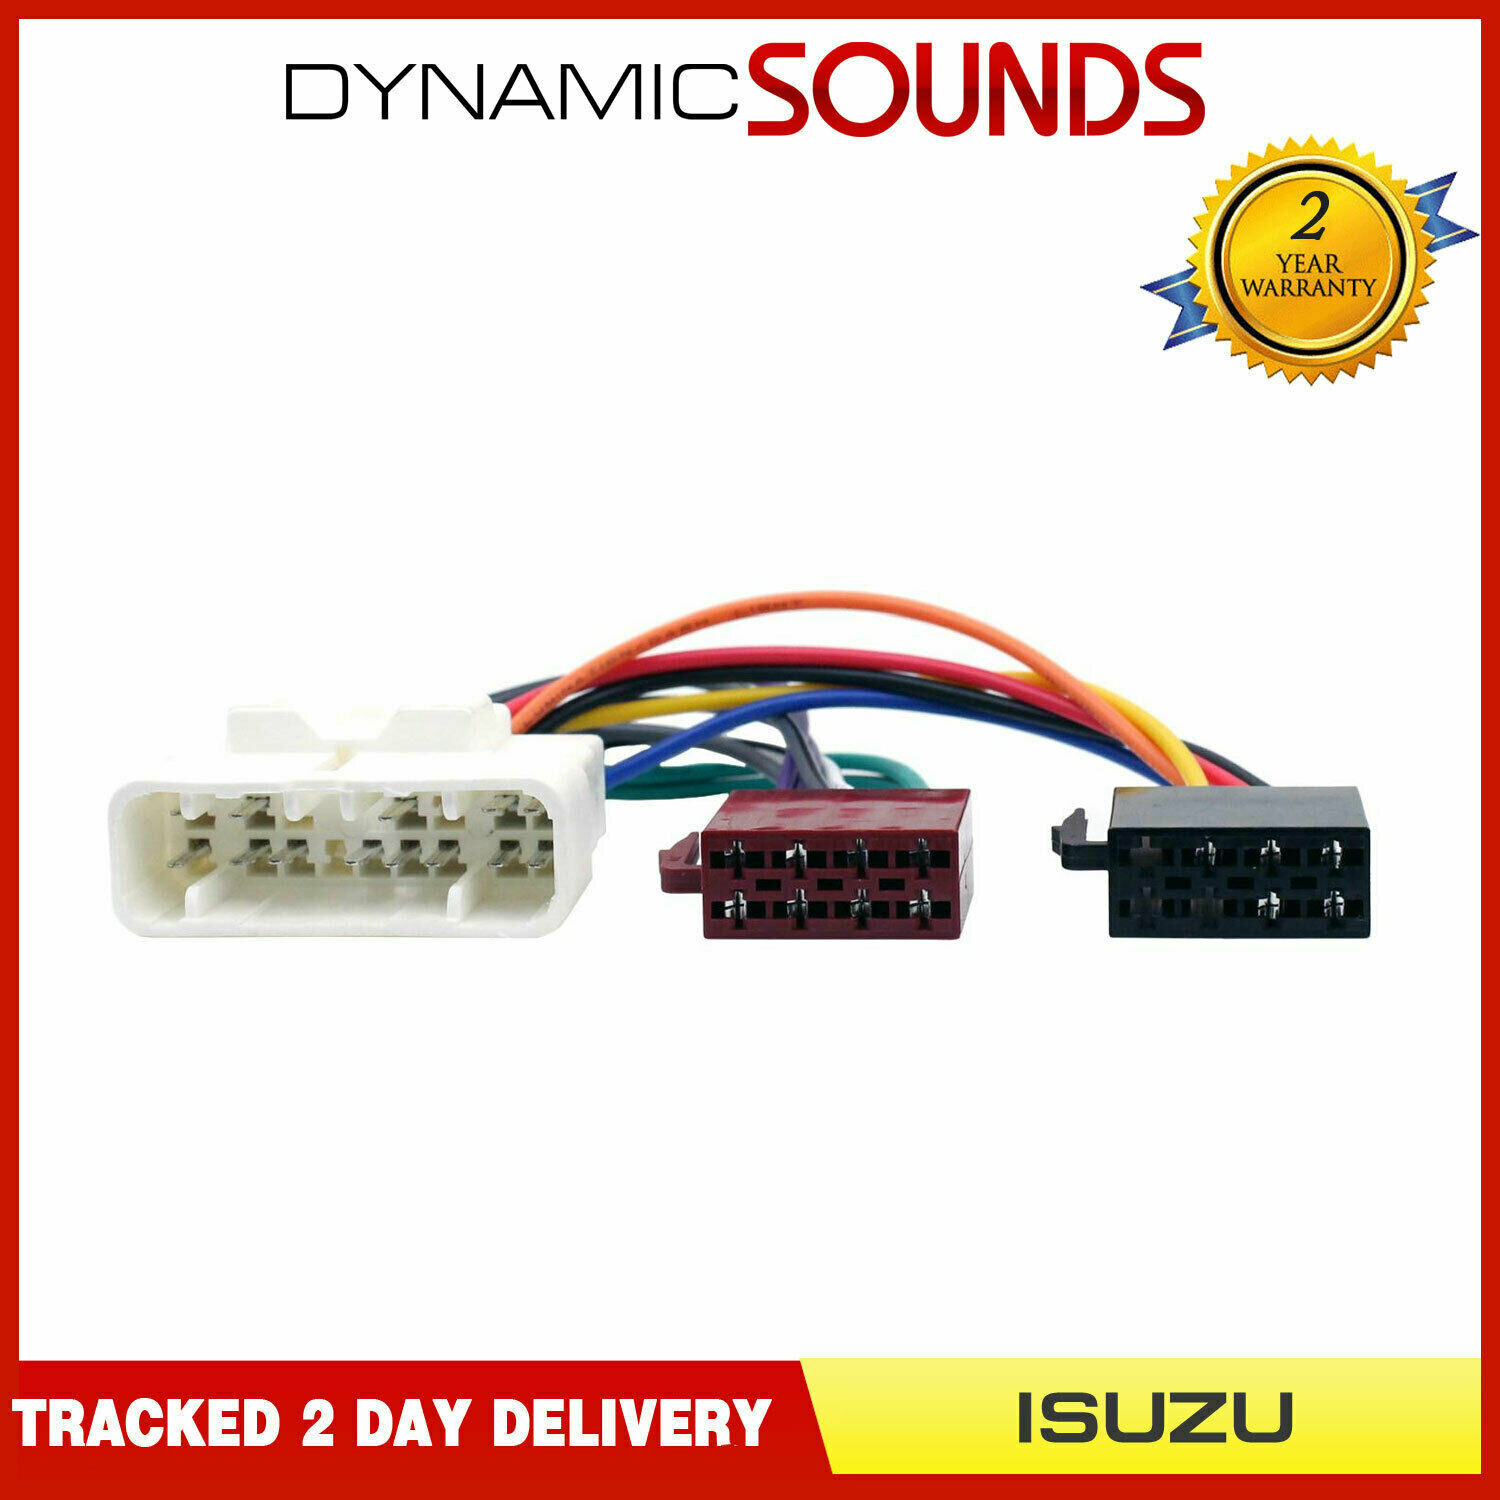 CT20IS02 Car Stereo Radio Wiring Harness ISO Loom For Isuzu Rodeo 1993  Onwards 1 of 2FREE Shipping ...